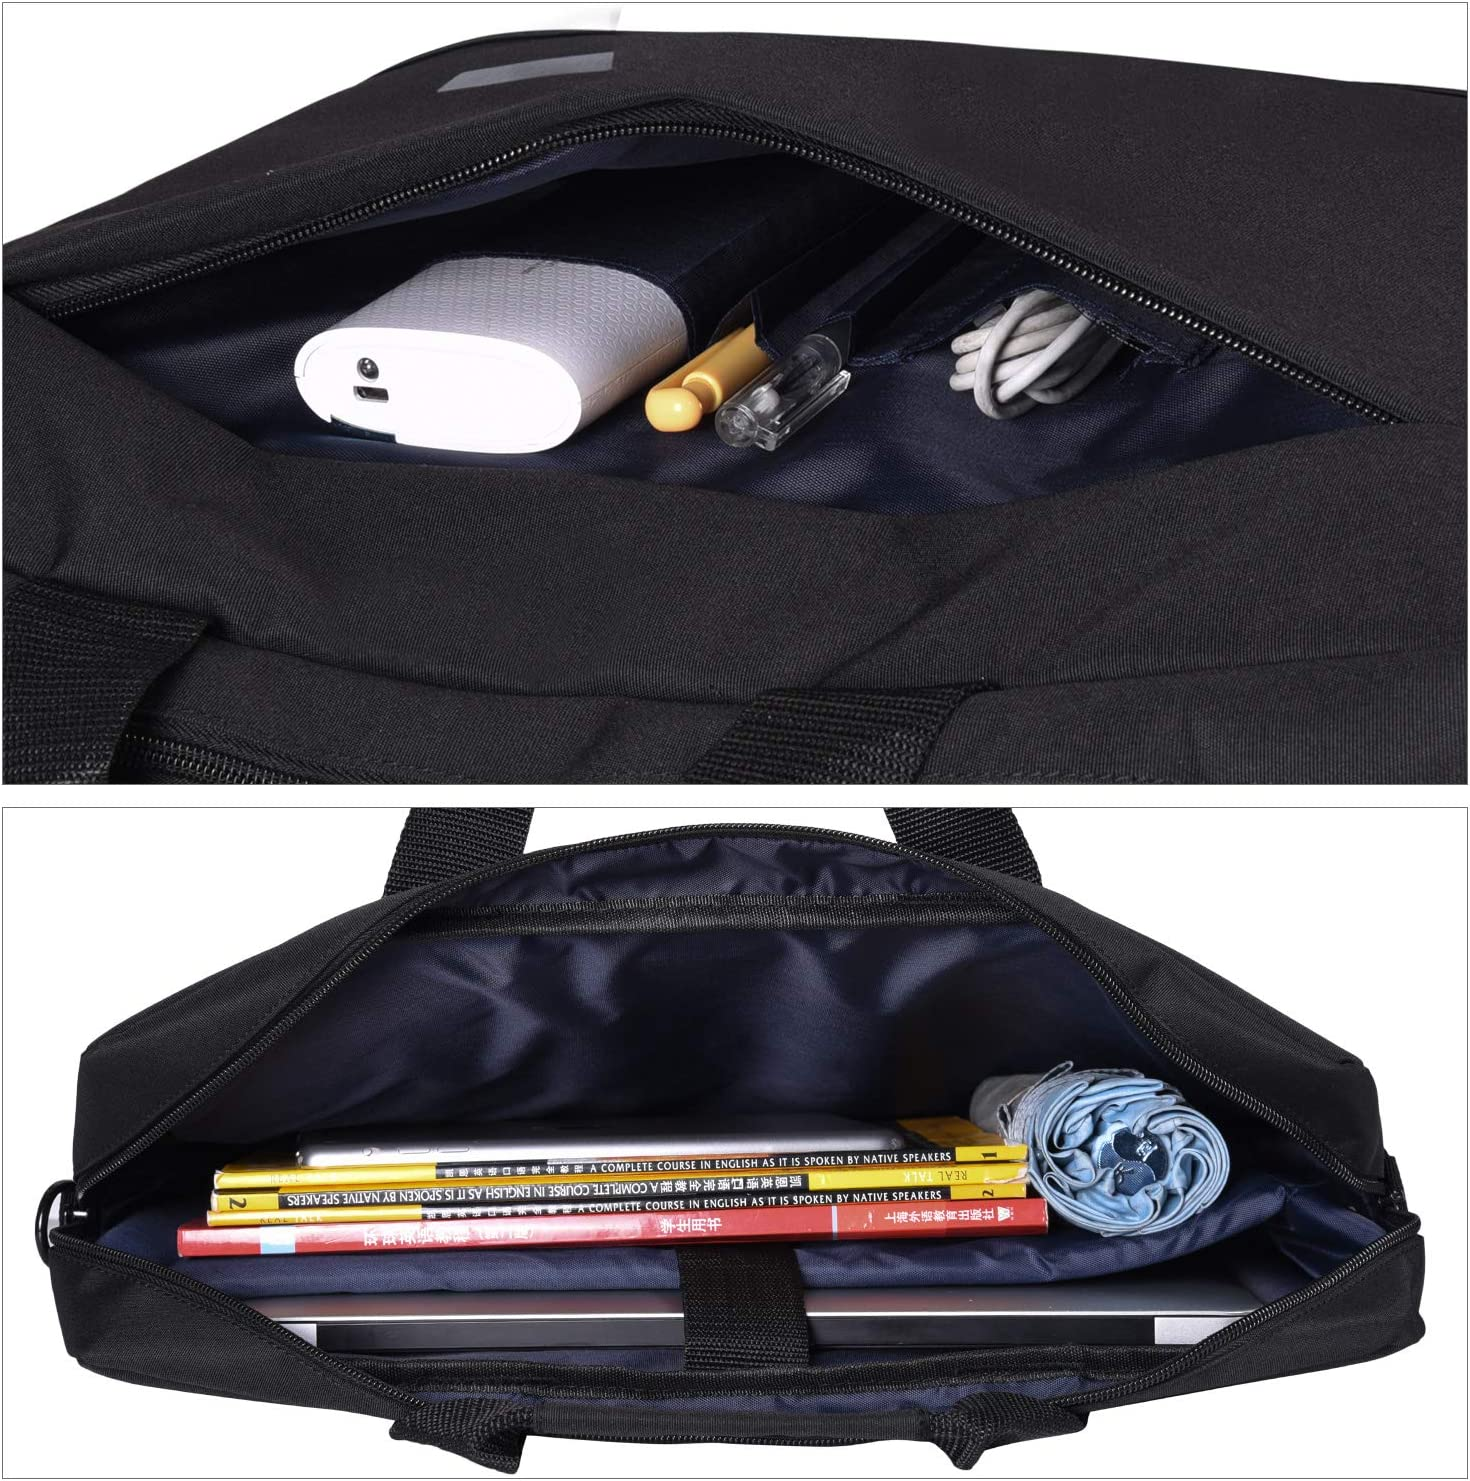 Navitech Black Premium Messenger//Carry Bag Compatible with The Acer/Aspire 7 A715-74G 15.6